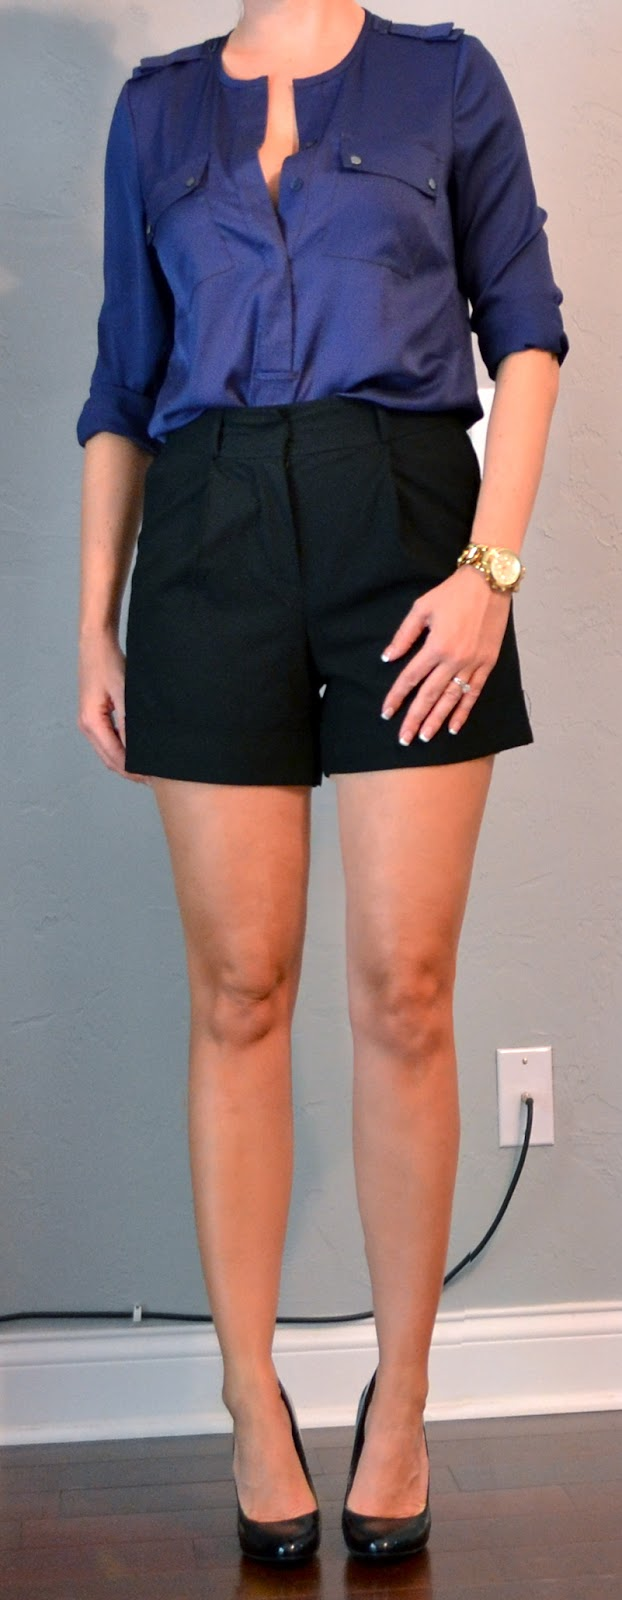 dress - High black waisted shorts club outfit video